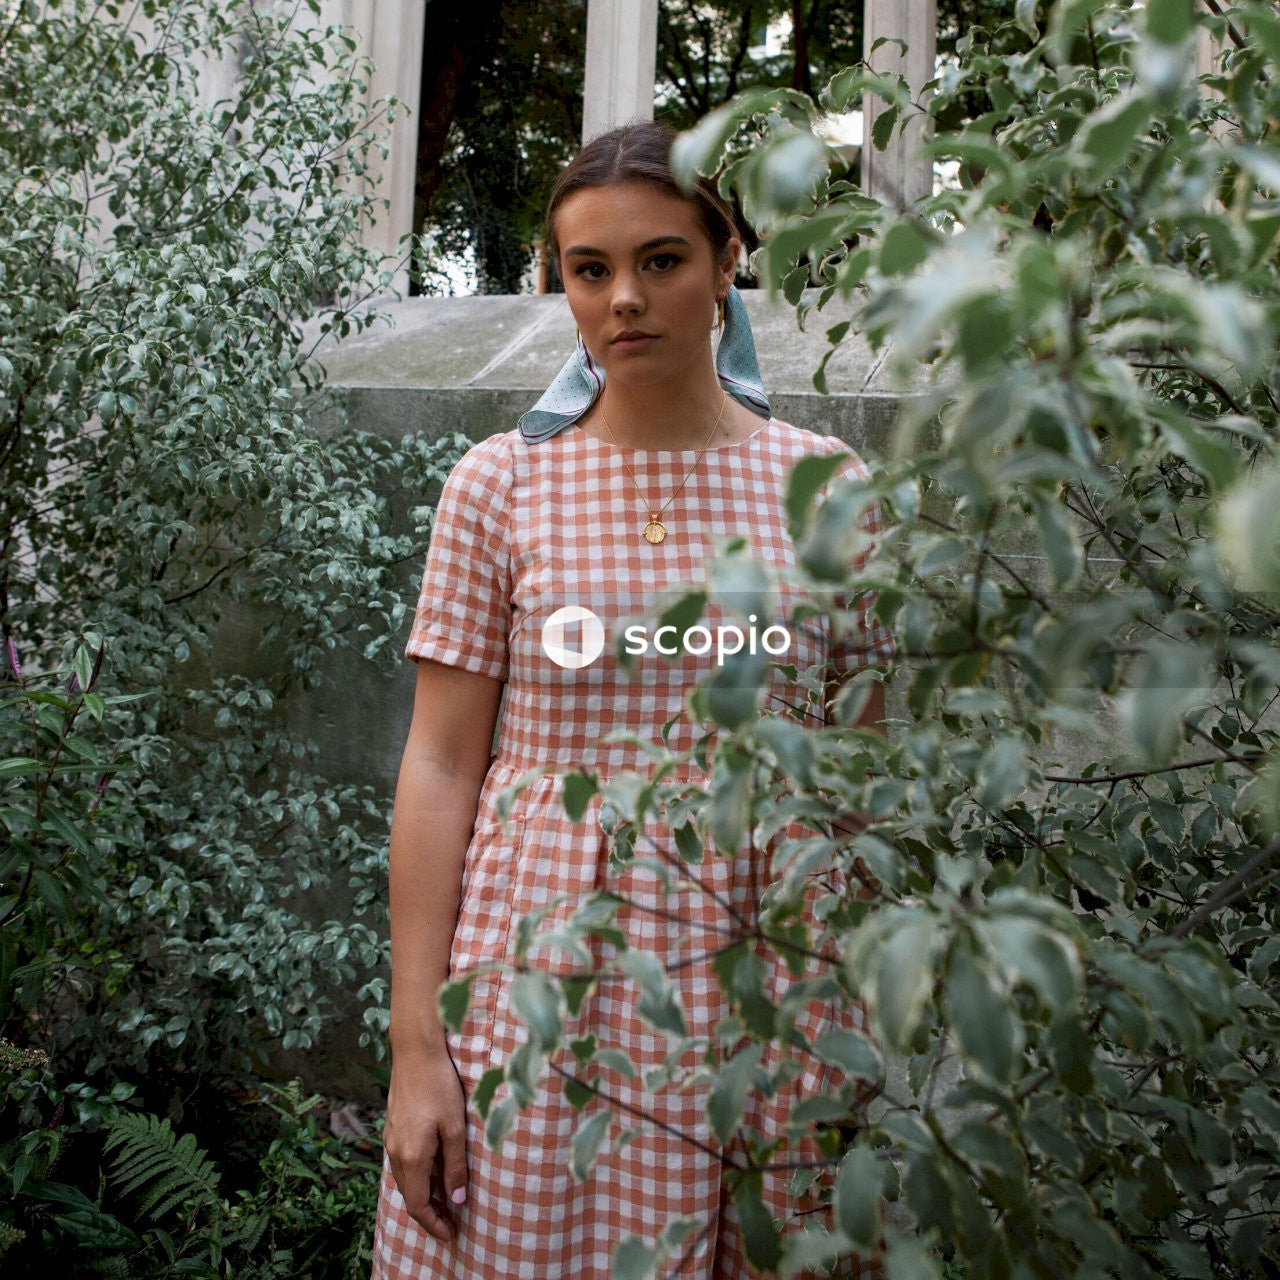 Woman in white and pink plaid dress standing beside green plants